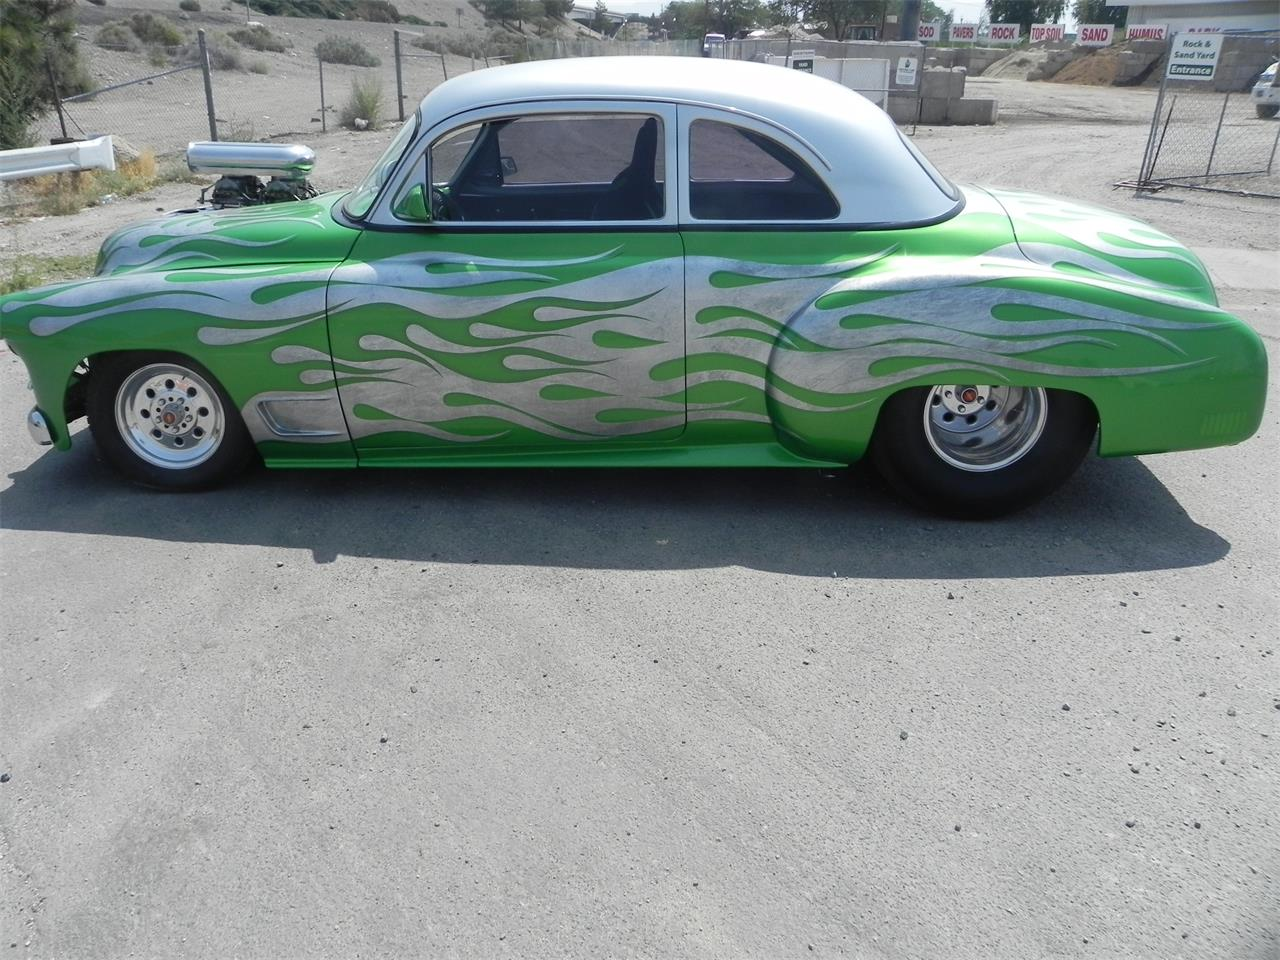 1950 Chevrolet Styleline Deluxe (CC-1304098) for sale in SPARKS, Nevada